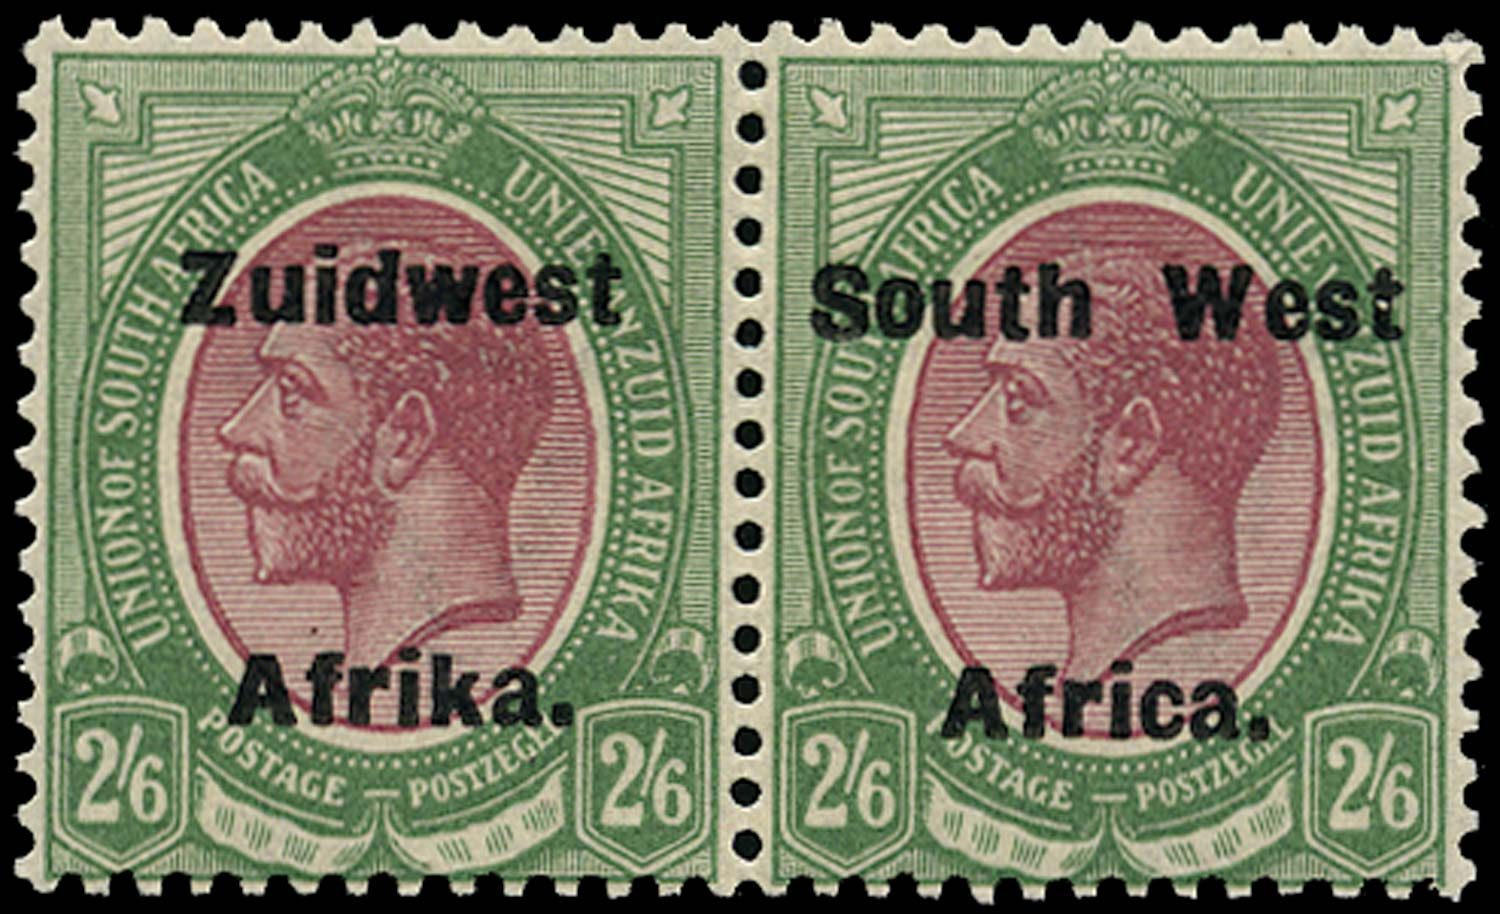 SOUTH WEST AFRICA 1923  SG37 Mint unmounted 2s6d purple and green from setting IV